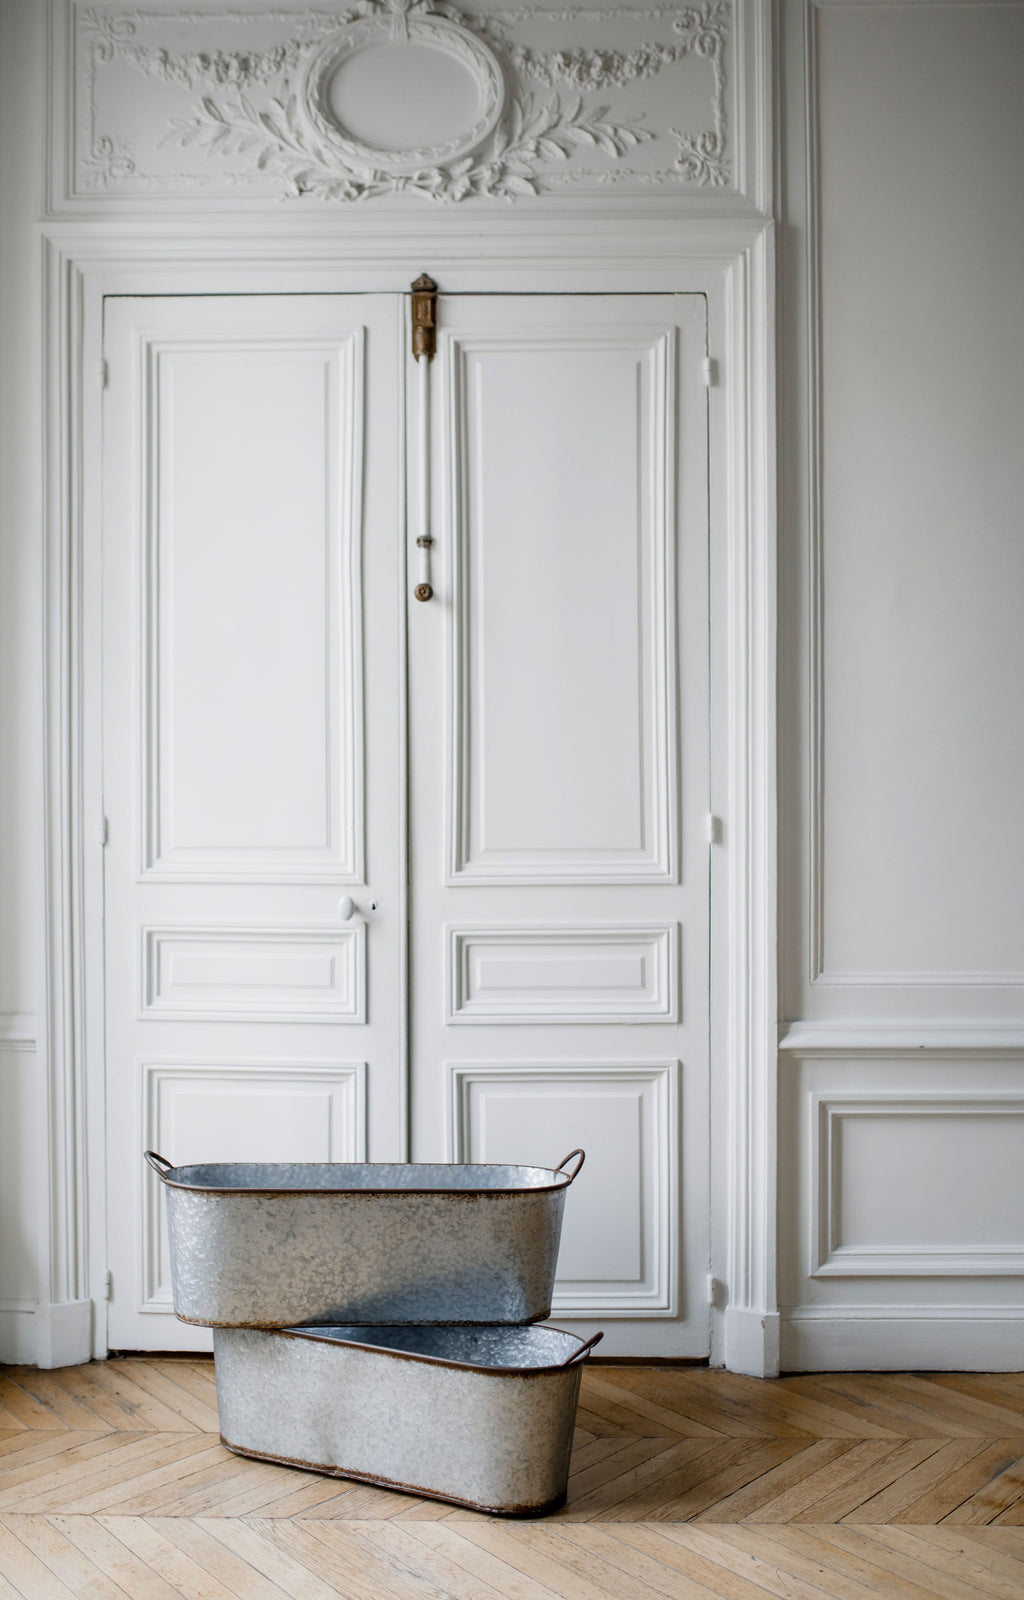 Antique tin buckets for rent from Madame de la Maison